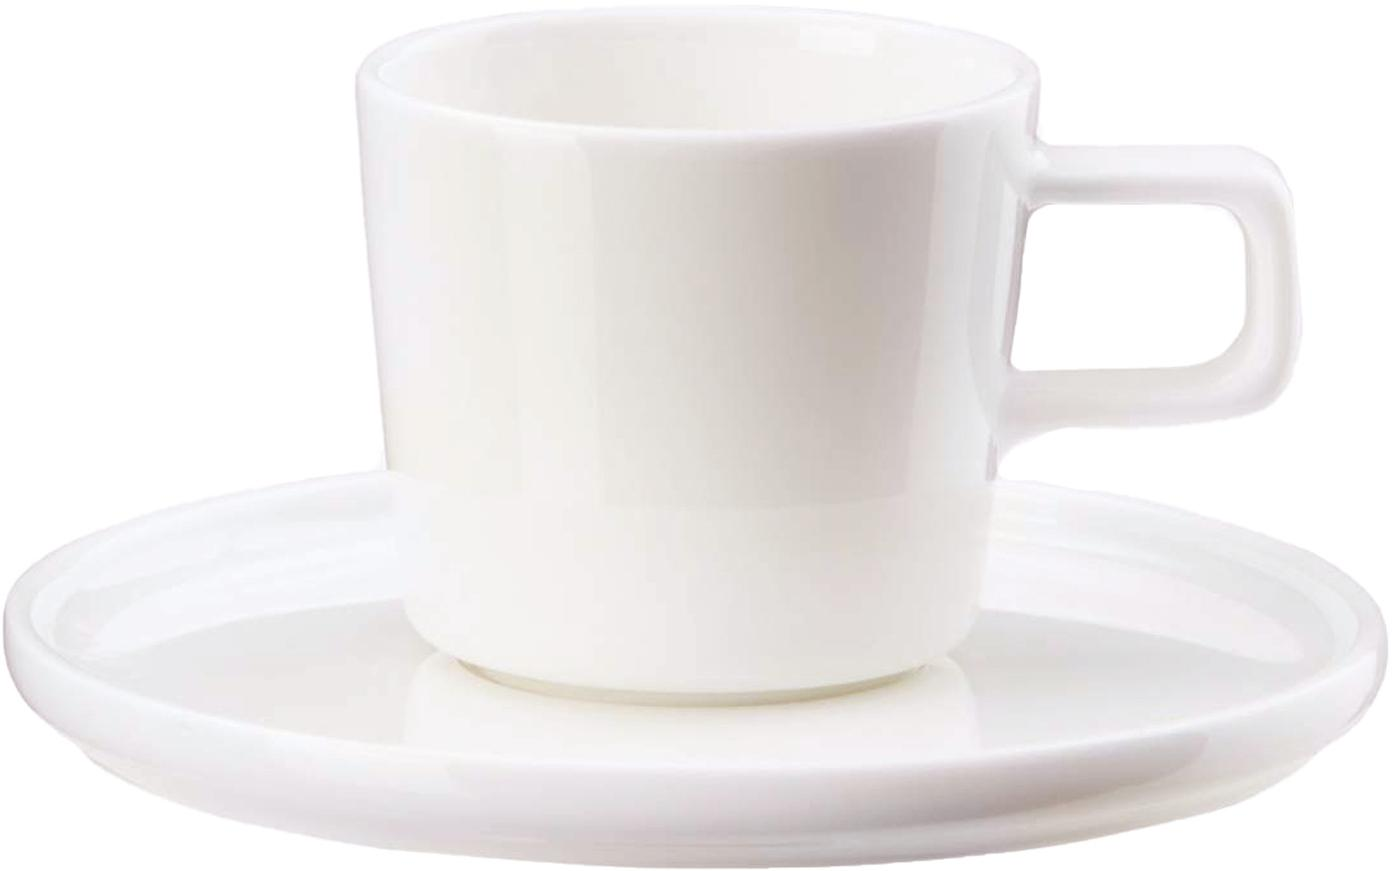 Fine Bone China Tassen Oco mit Untertassen, 12er-Set, Fine Bone China (Porzellan), Elfenbein, Ø 6 x H 7 cm